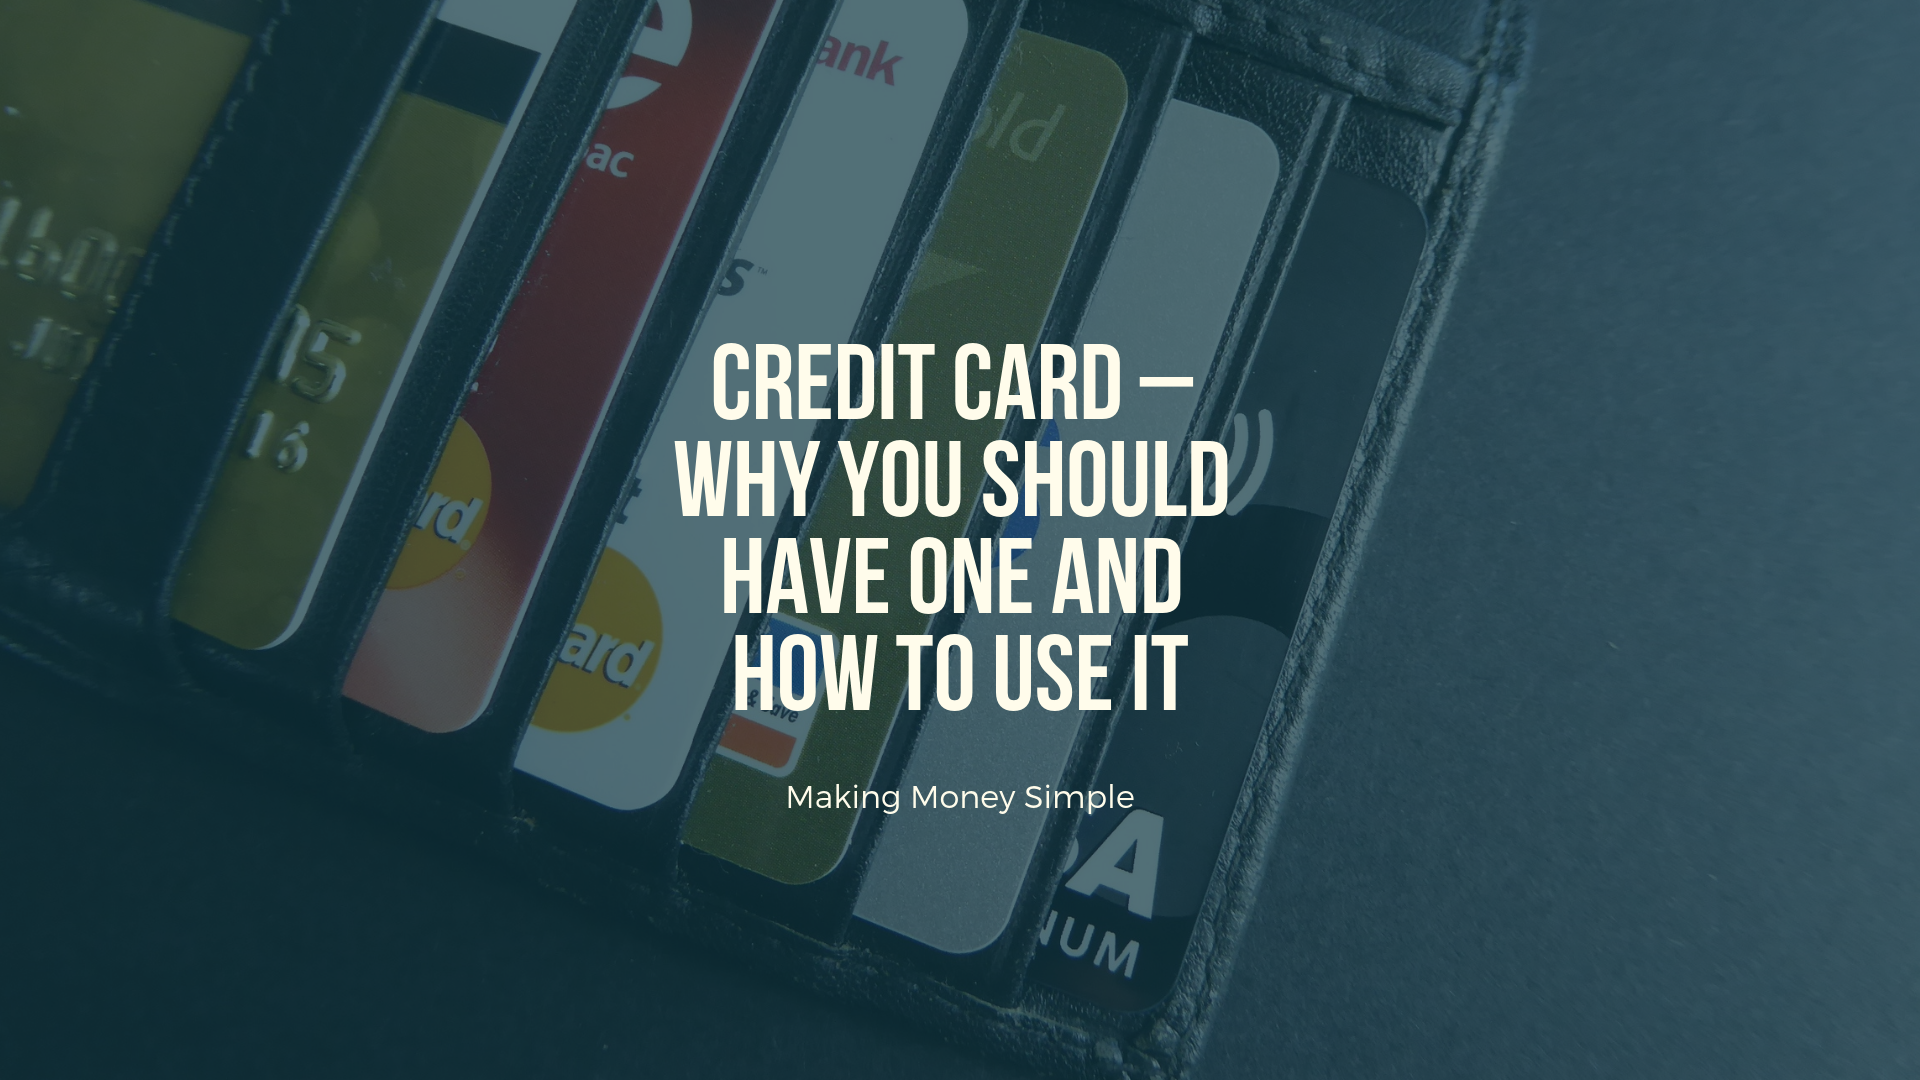 Credit Card – Why get one and how to use it